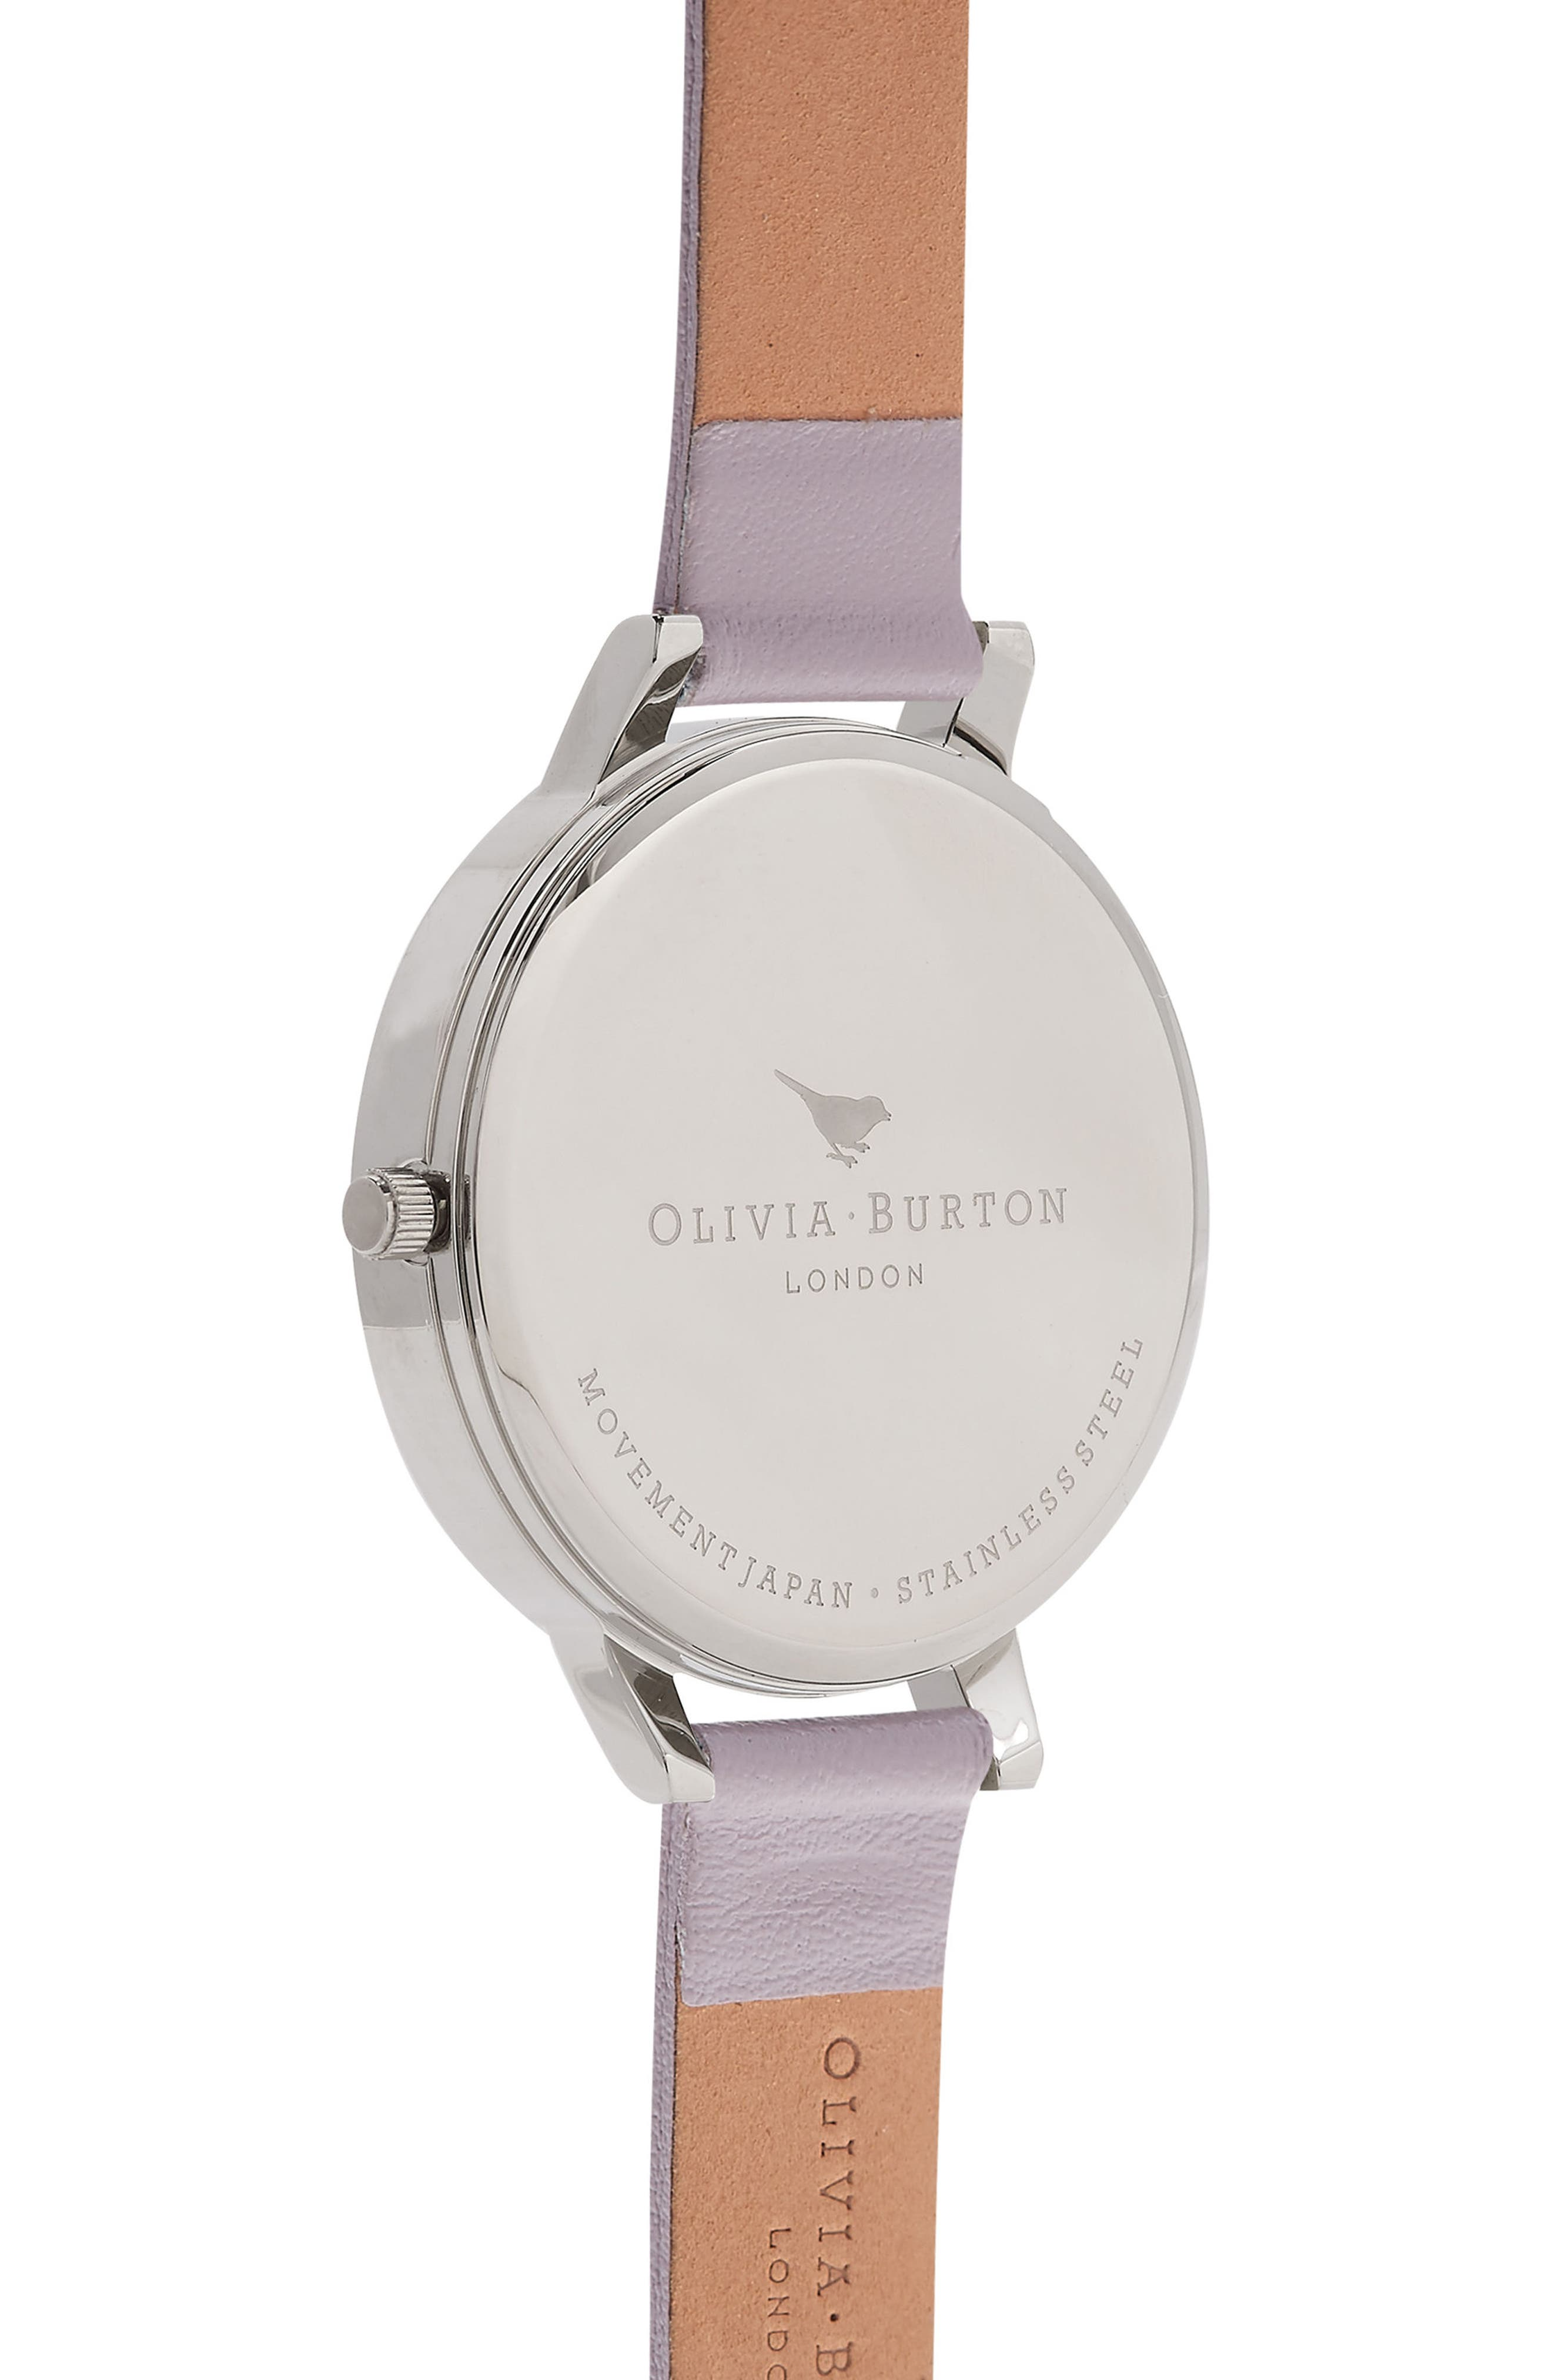 Painterly Prints Leather Strap Watch, 38mm,                             Alternate thumbnail 2, color,                             Grey Lilac/ White/ Silver